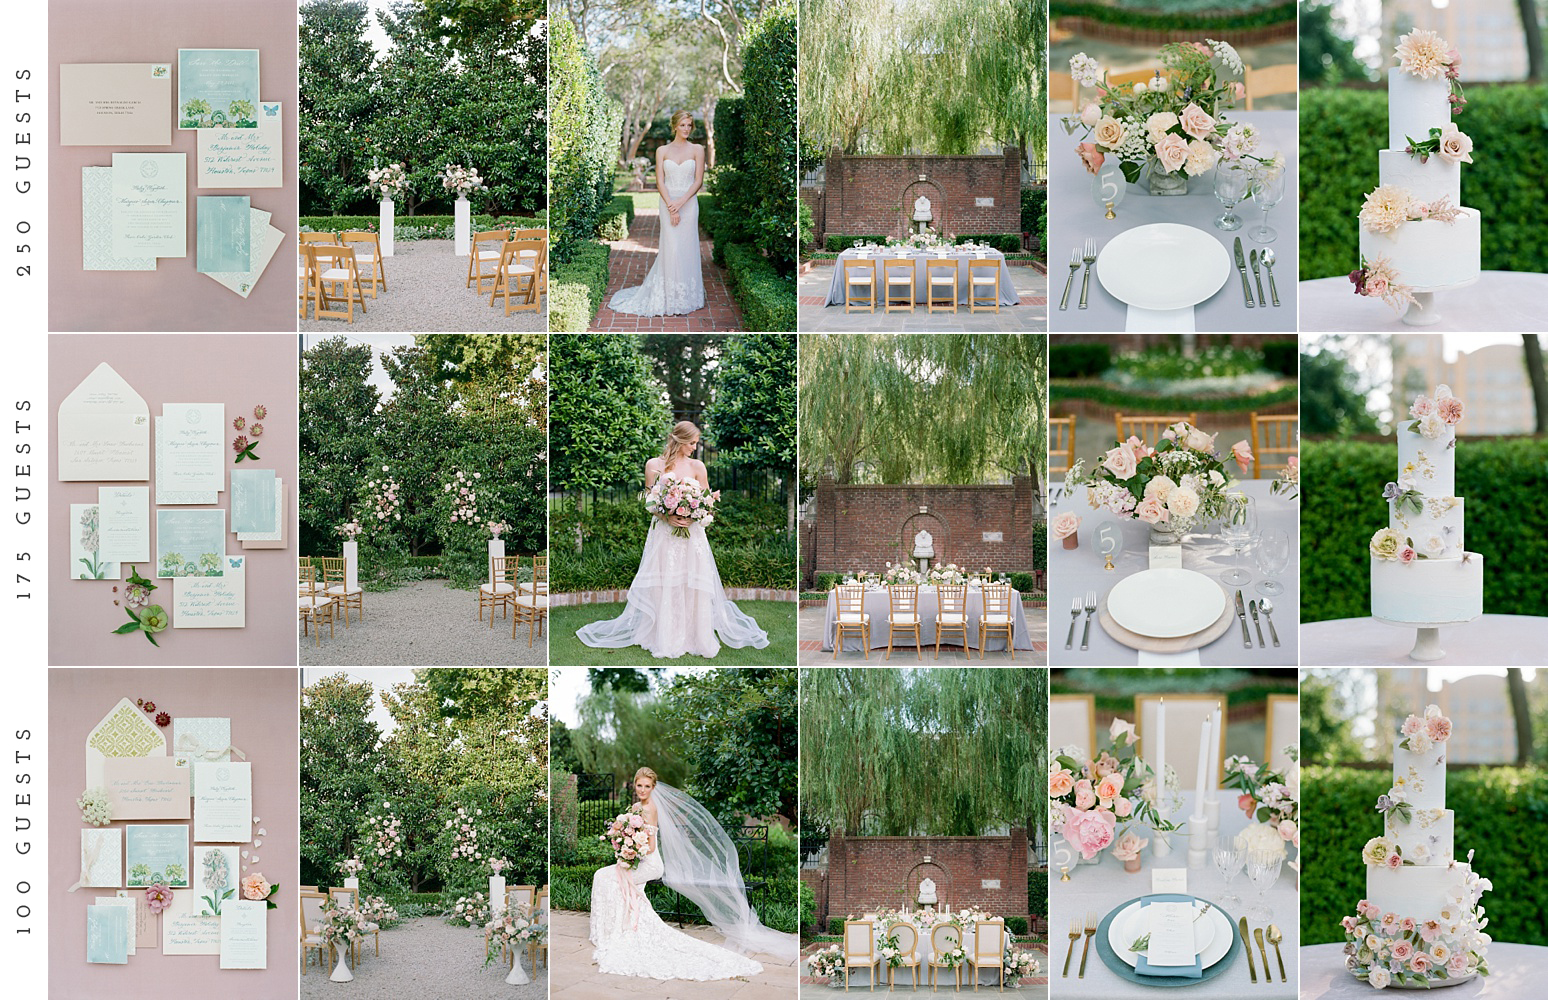 How-Guest-Count-Affects-Wedding-Design-Houston-Wedding-Photography-River-Oaks-Garden-Club-Two-Be-Wed-Flower-Vibes-Fine-Art-Film-Destination-Best-Top-Dana-Fernandez-Photography-Josh-Austin-Dallas.jpg